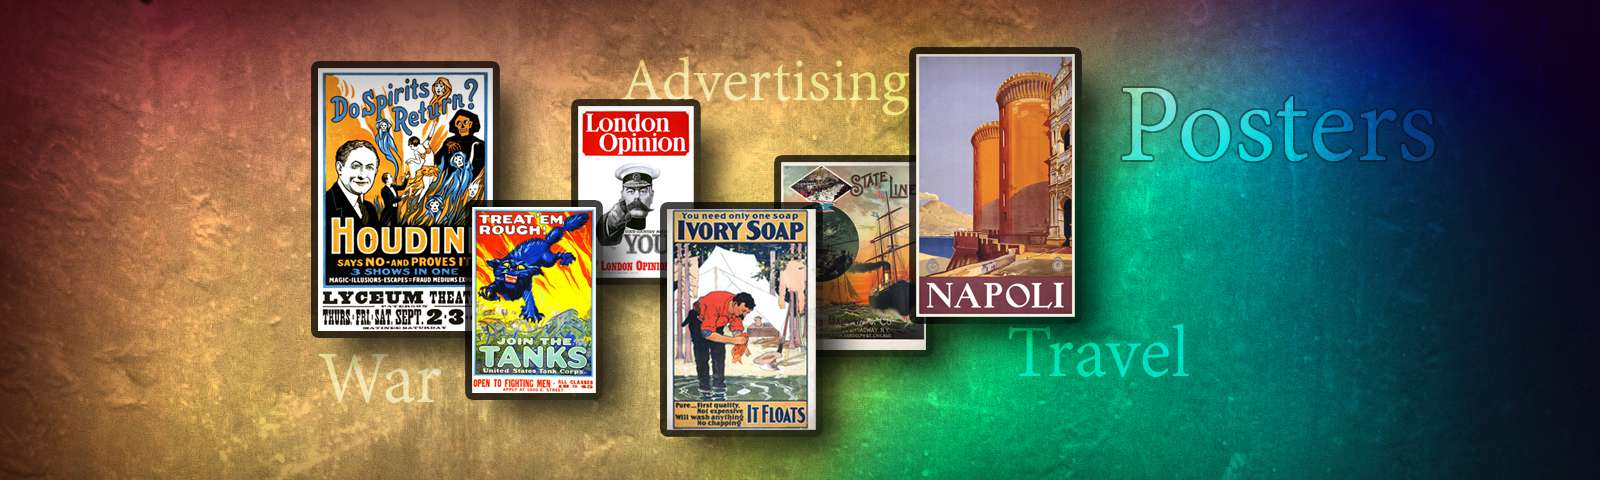 Posters - World War, Travel, Advertising...